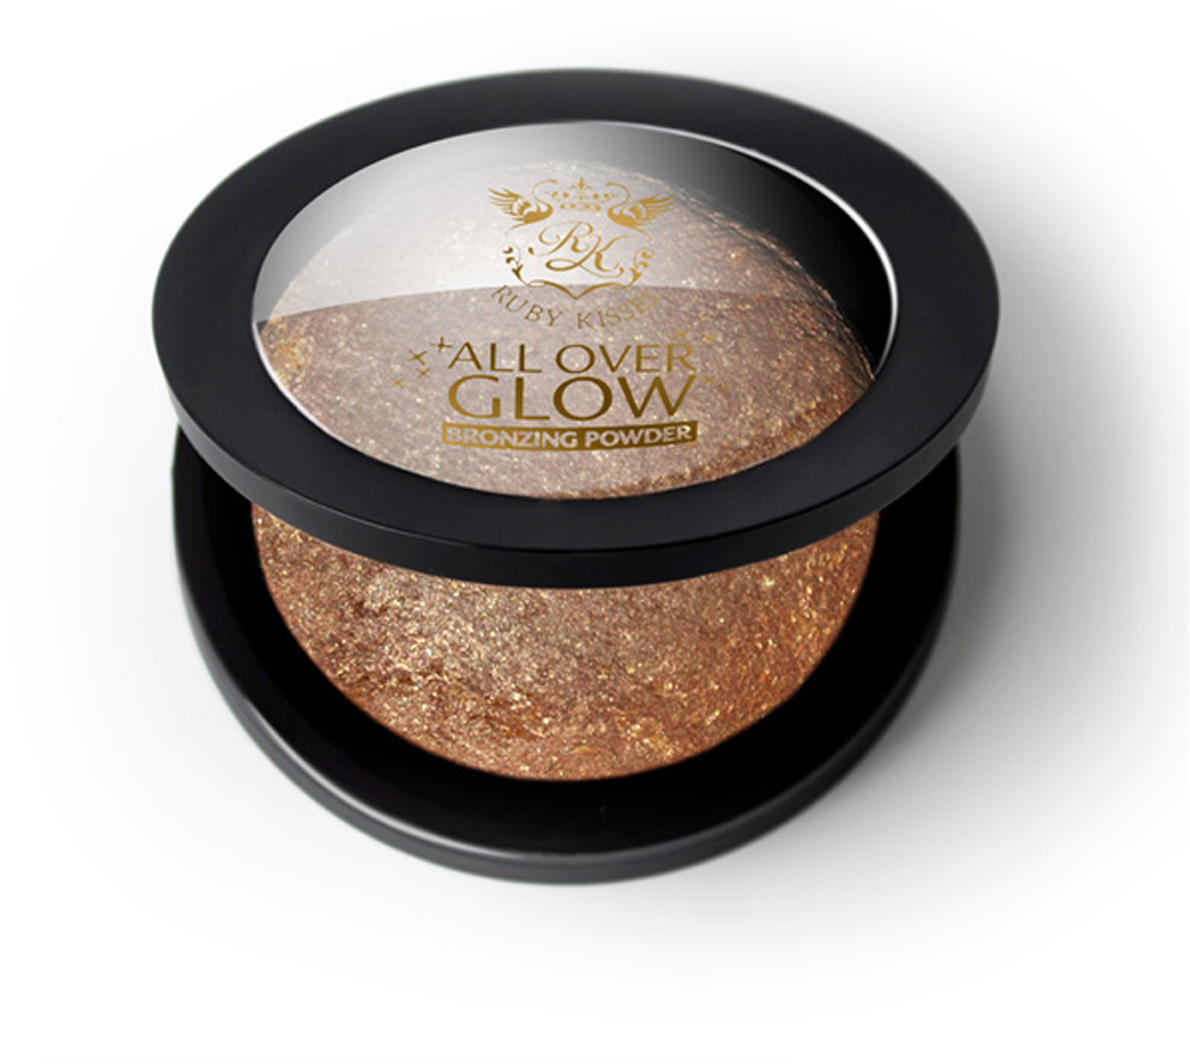 Kiss Бронзирующая пудра Bronze Glow Face & Body Bling Powder ABP03 бронзатор kiss all over glow bronzing powder abp03 цвет abp03 bronze variant hex name ce835f